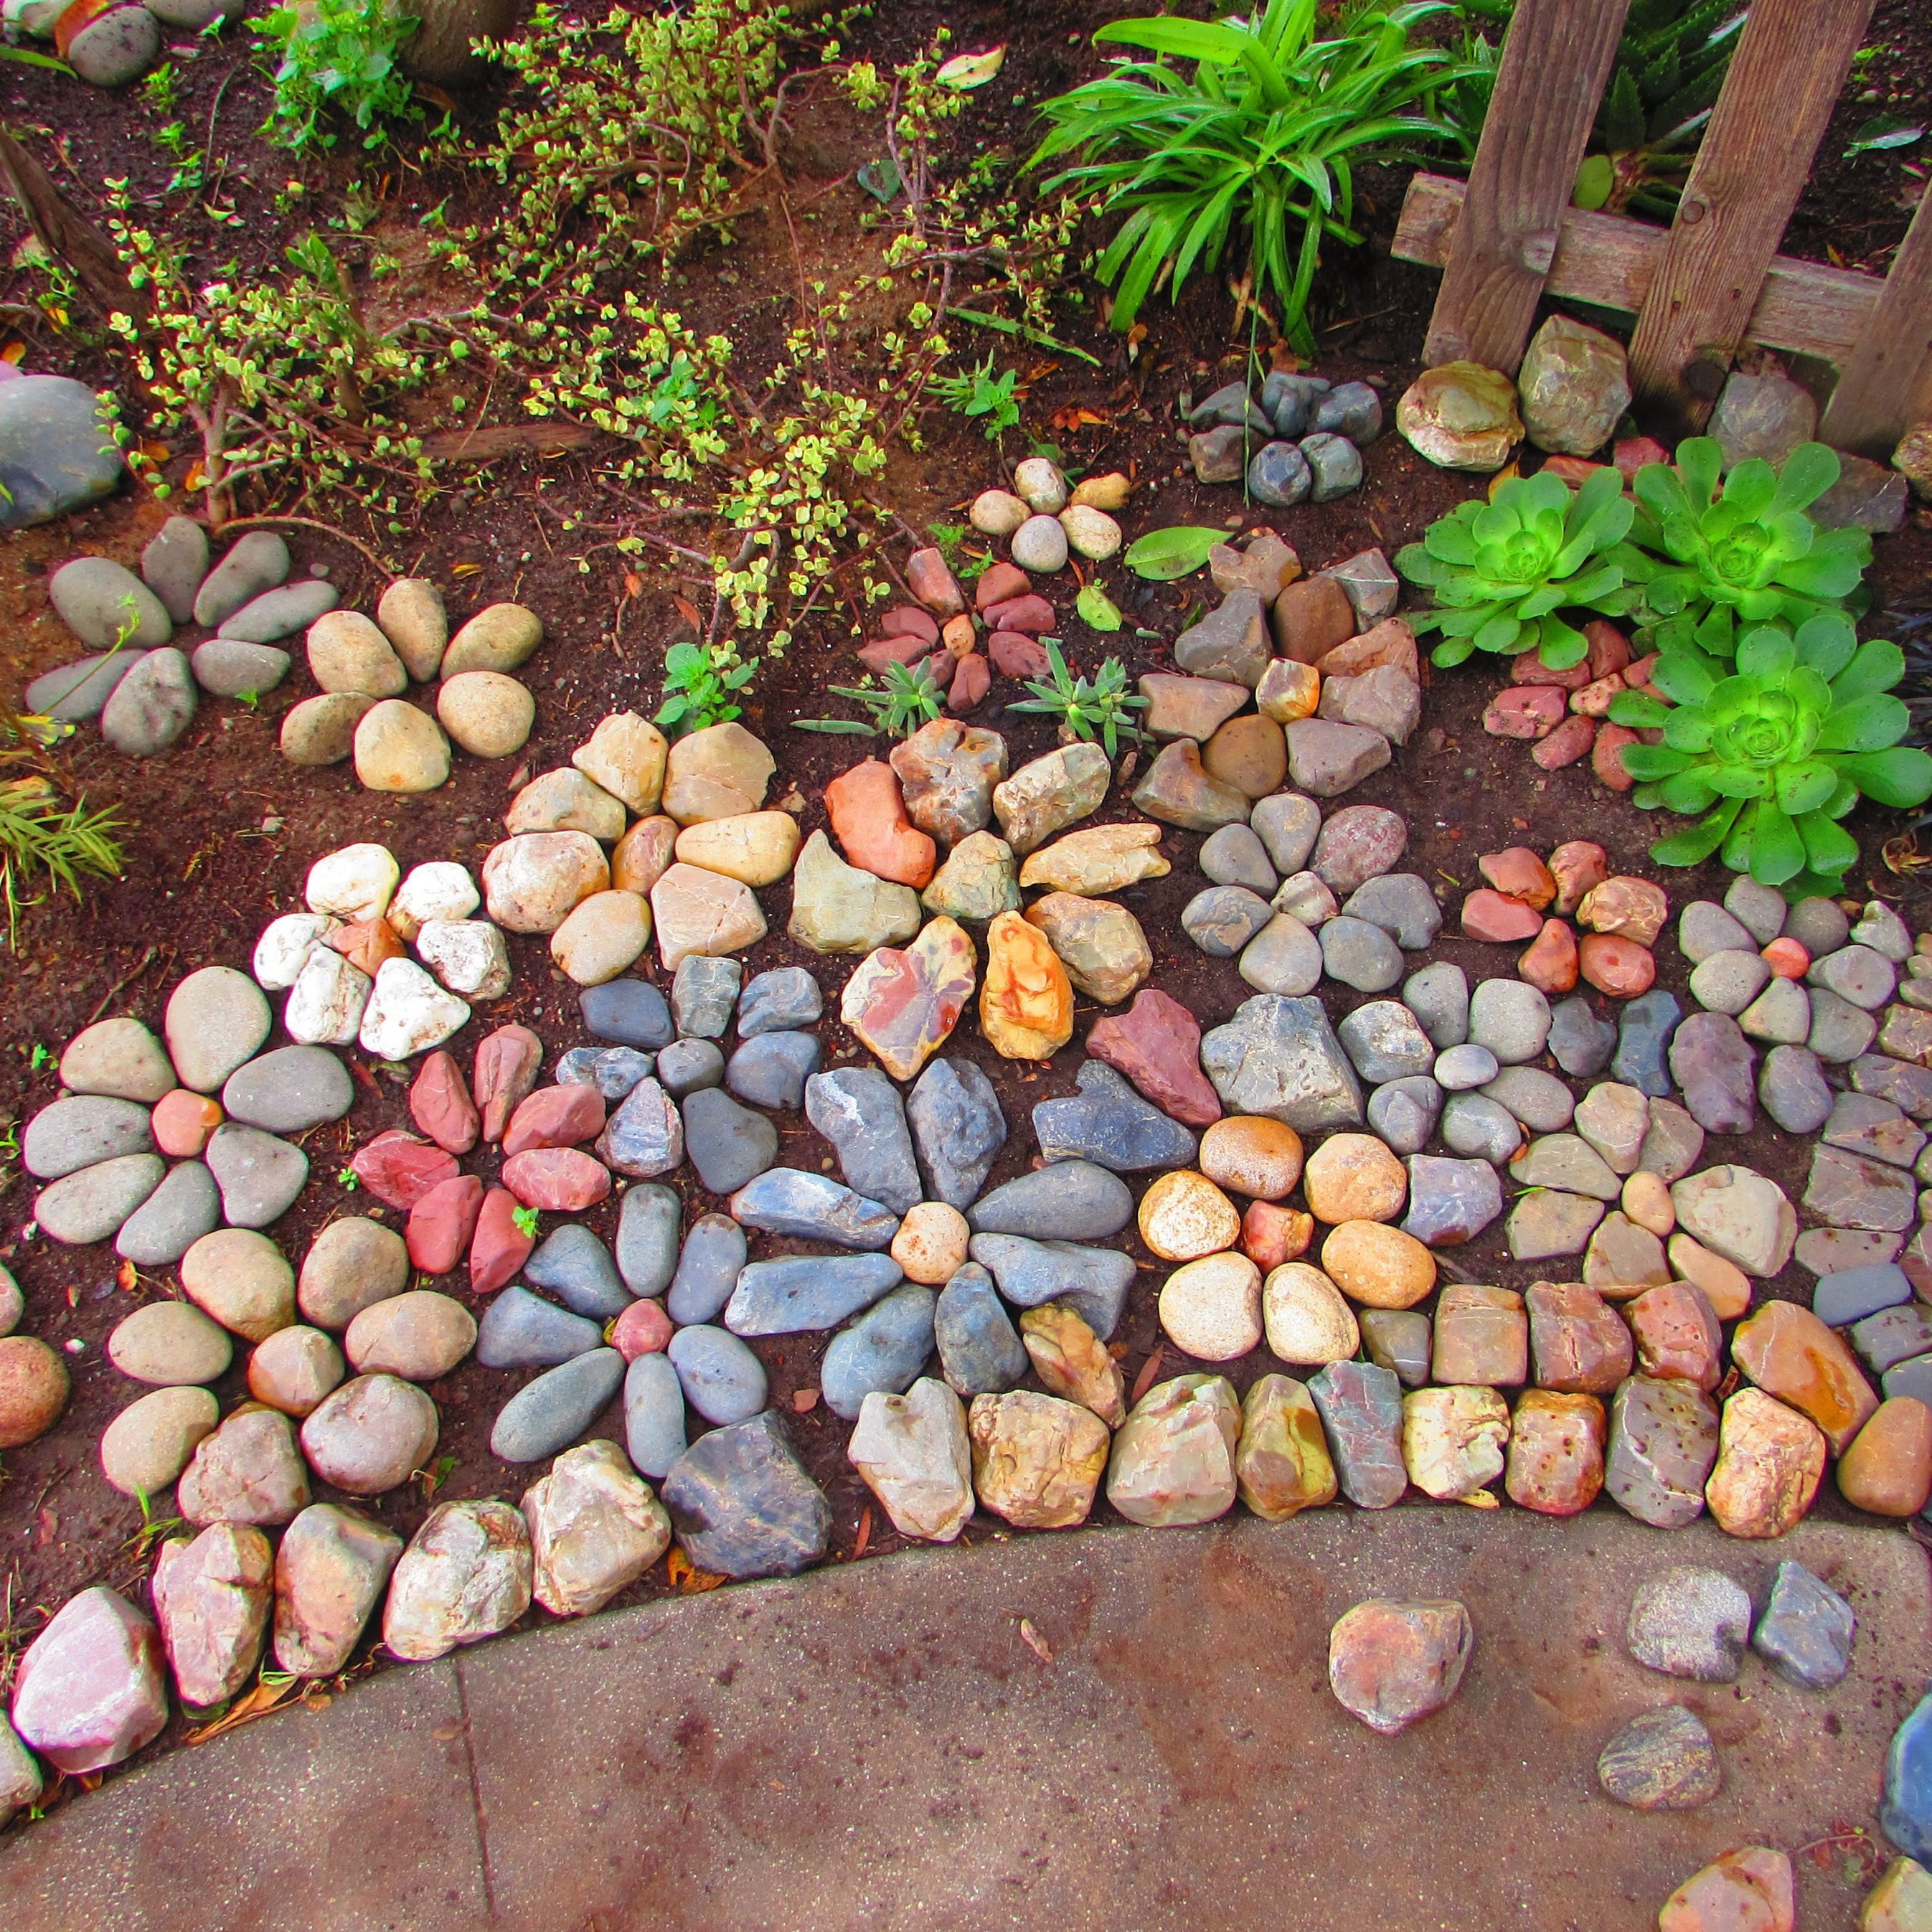 60 Beautiful Front Yard Rock Garden And Landscaping Ideas: 90 Simple And Beautiful Front Yard Landscaping Ideas On A